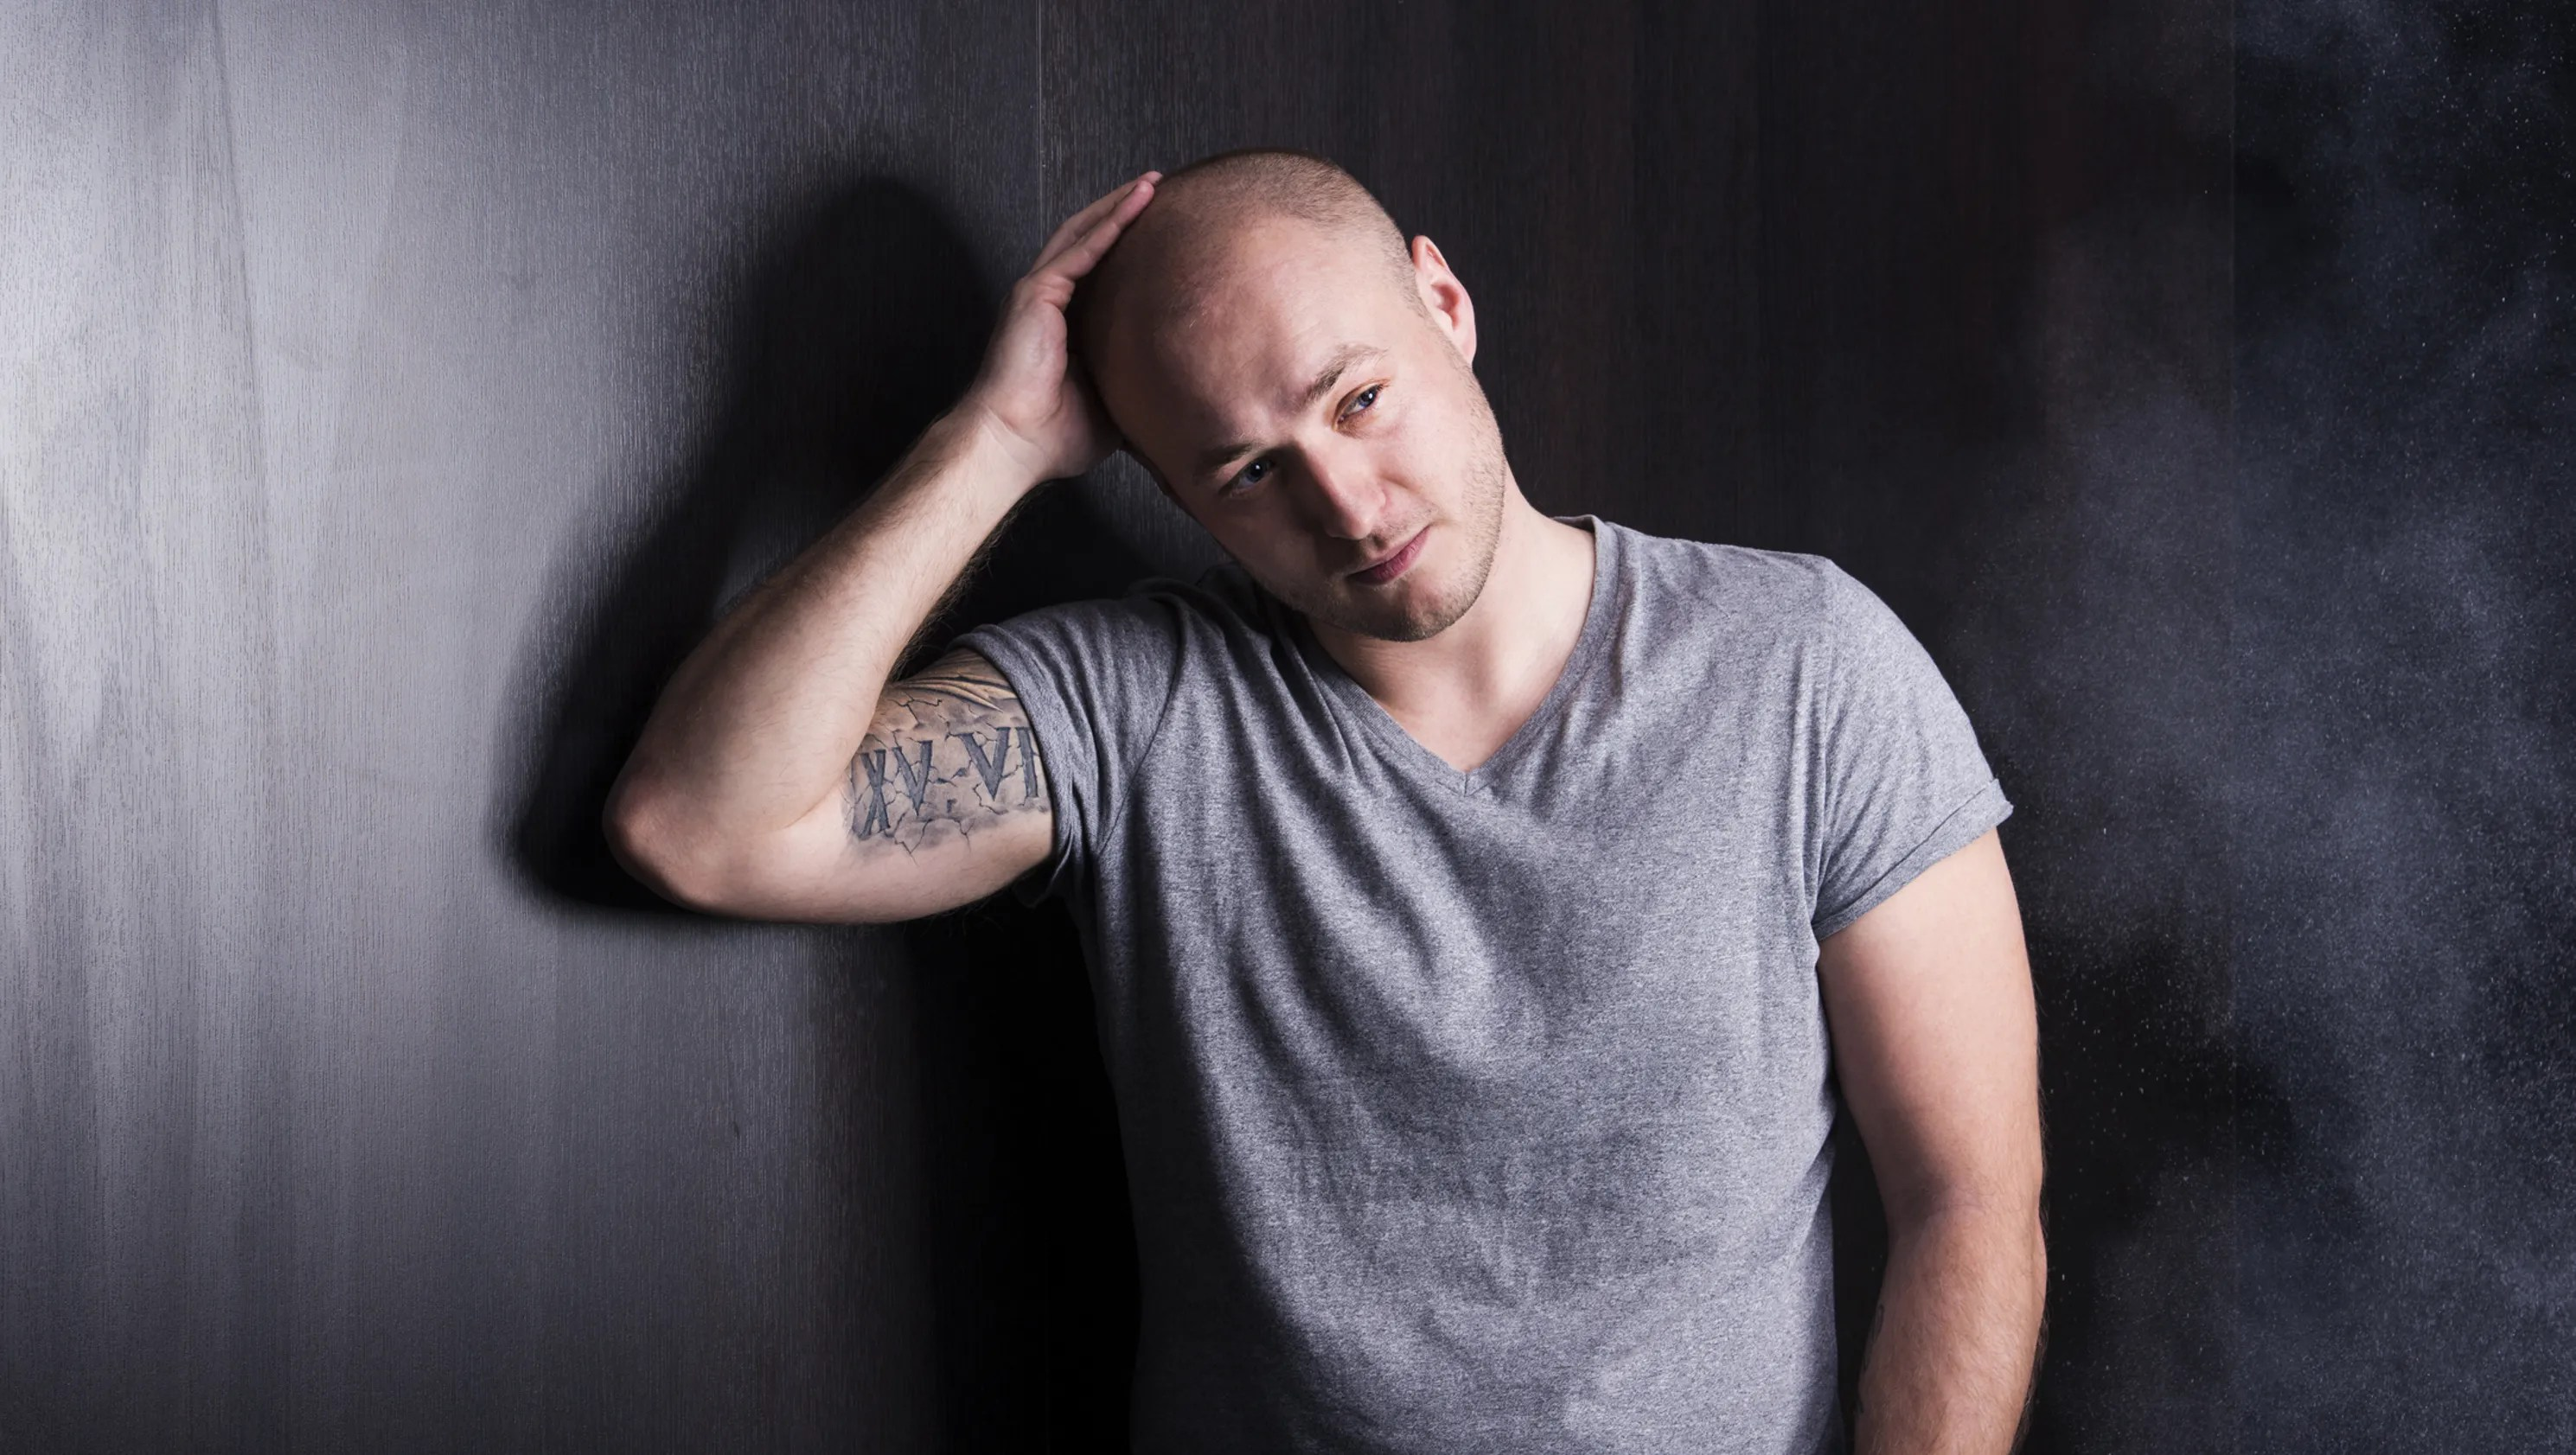 Bald Men Appear More Dominant Study Says